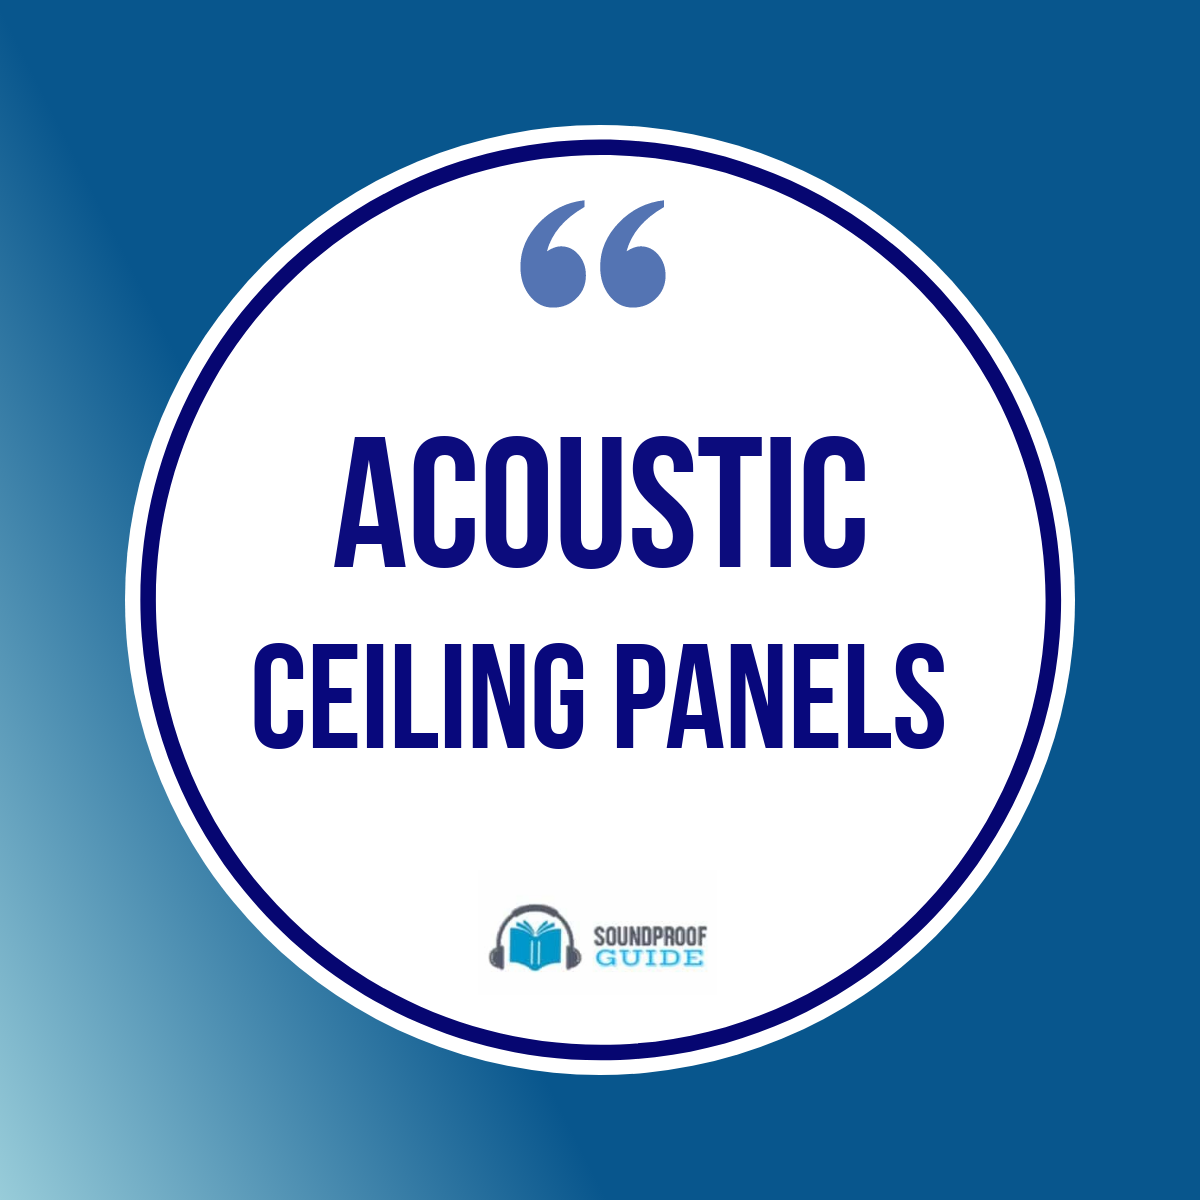 Pin By Soundproof Guide On Acoustic Ceiling Panels